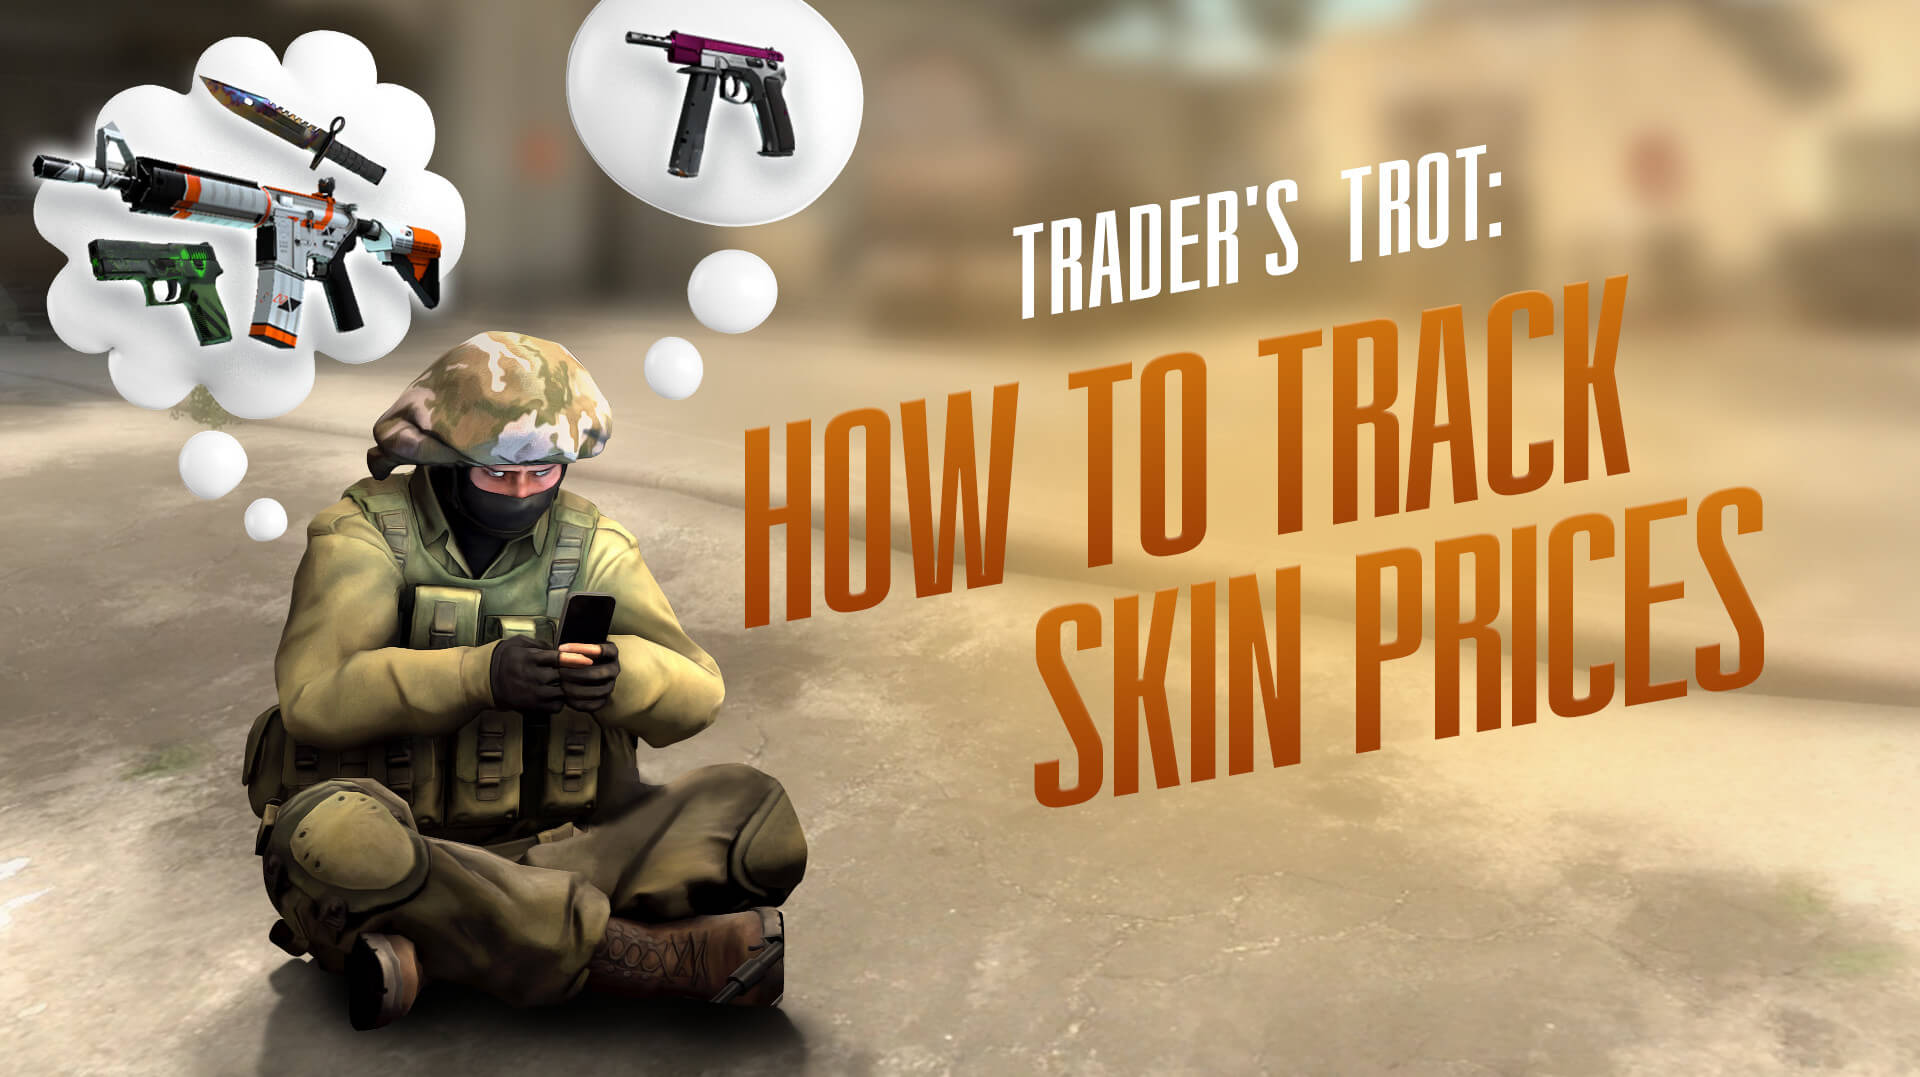 How to track skin prices | Cs money blog